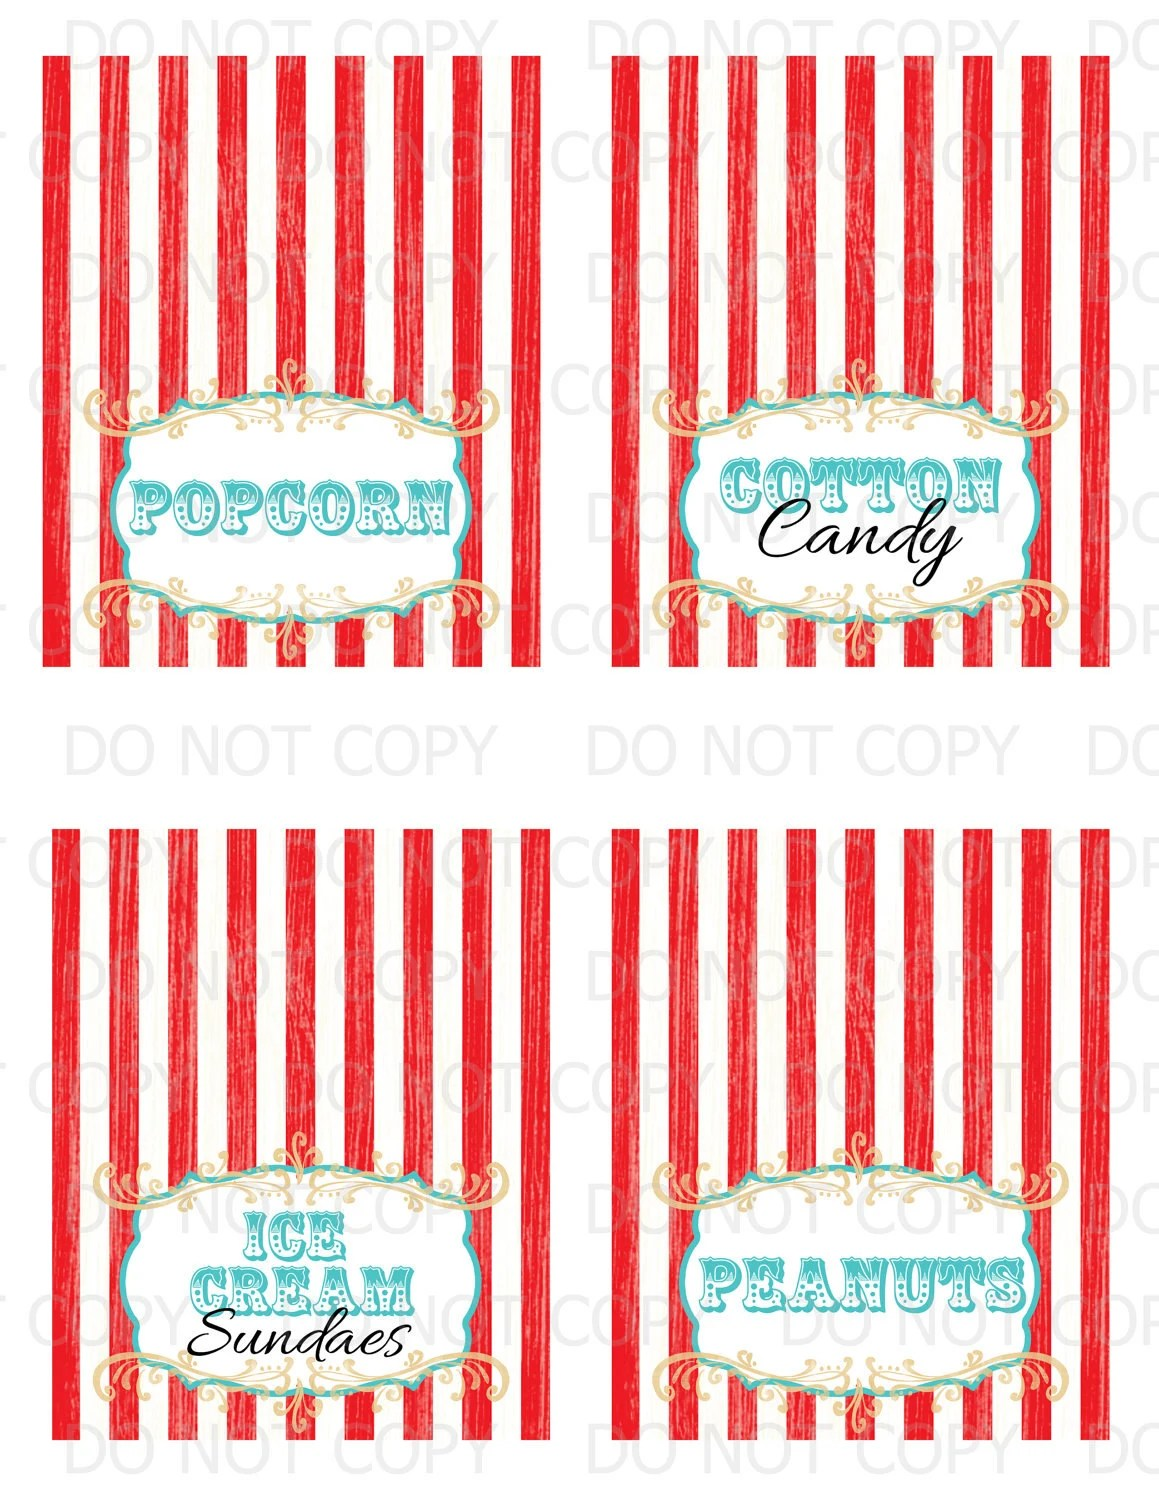 Worksheet Circus Tent Printable circus signs template free birthday party printables from printable diy vintage table tent food by onelovedesignsllc